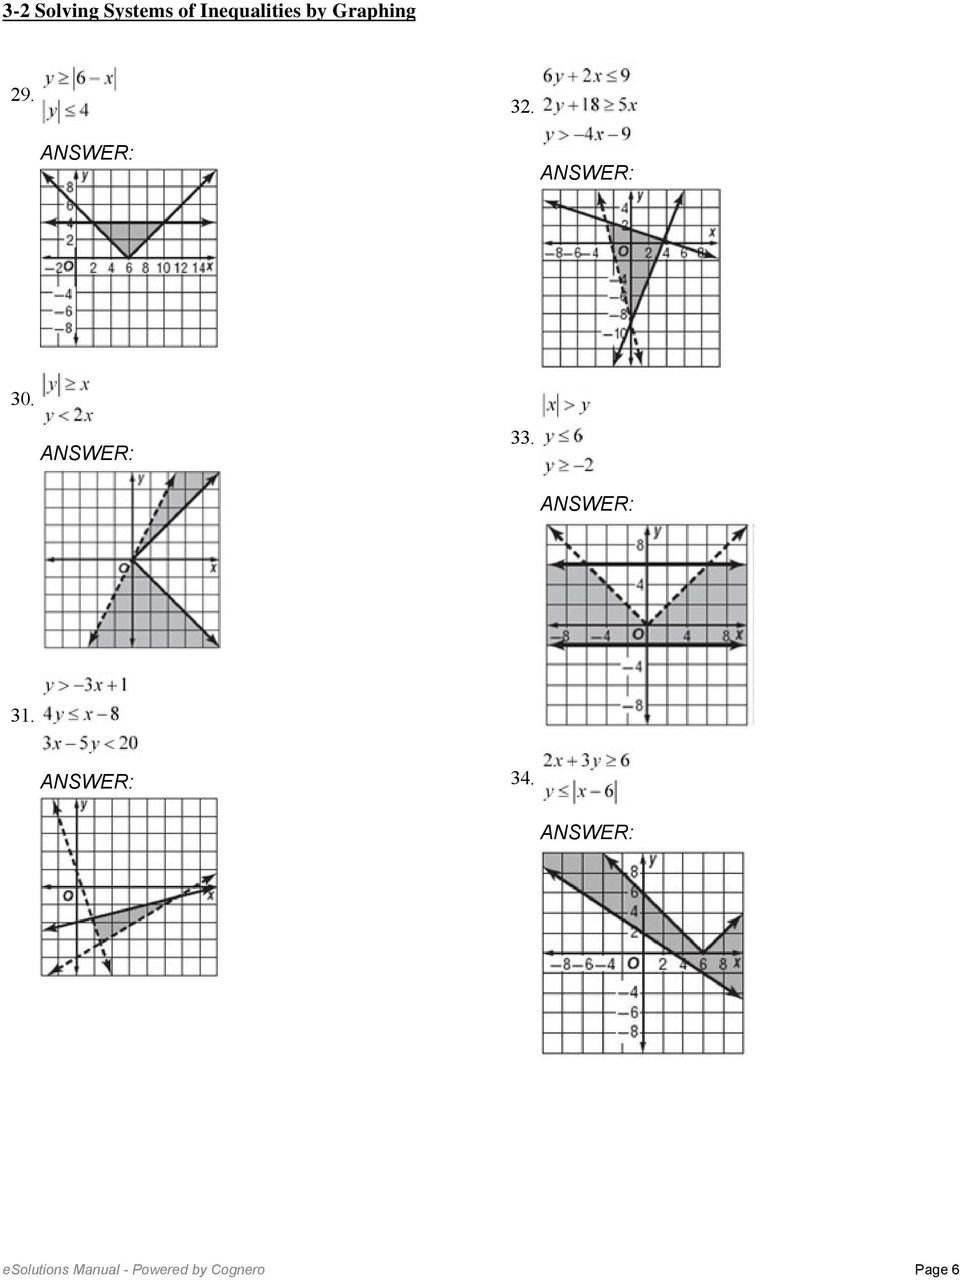 3-2 Solving Systems of Inequalities by Graphing. Solve